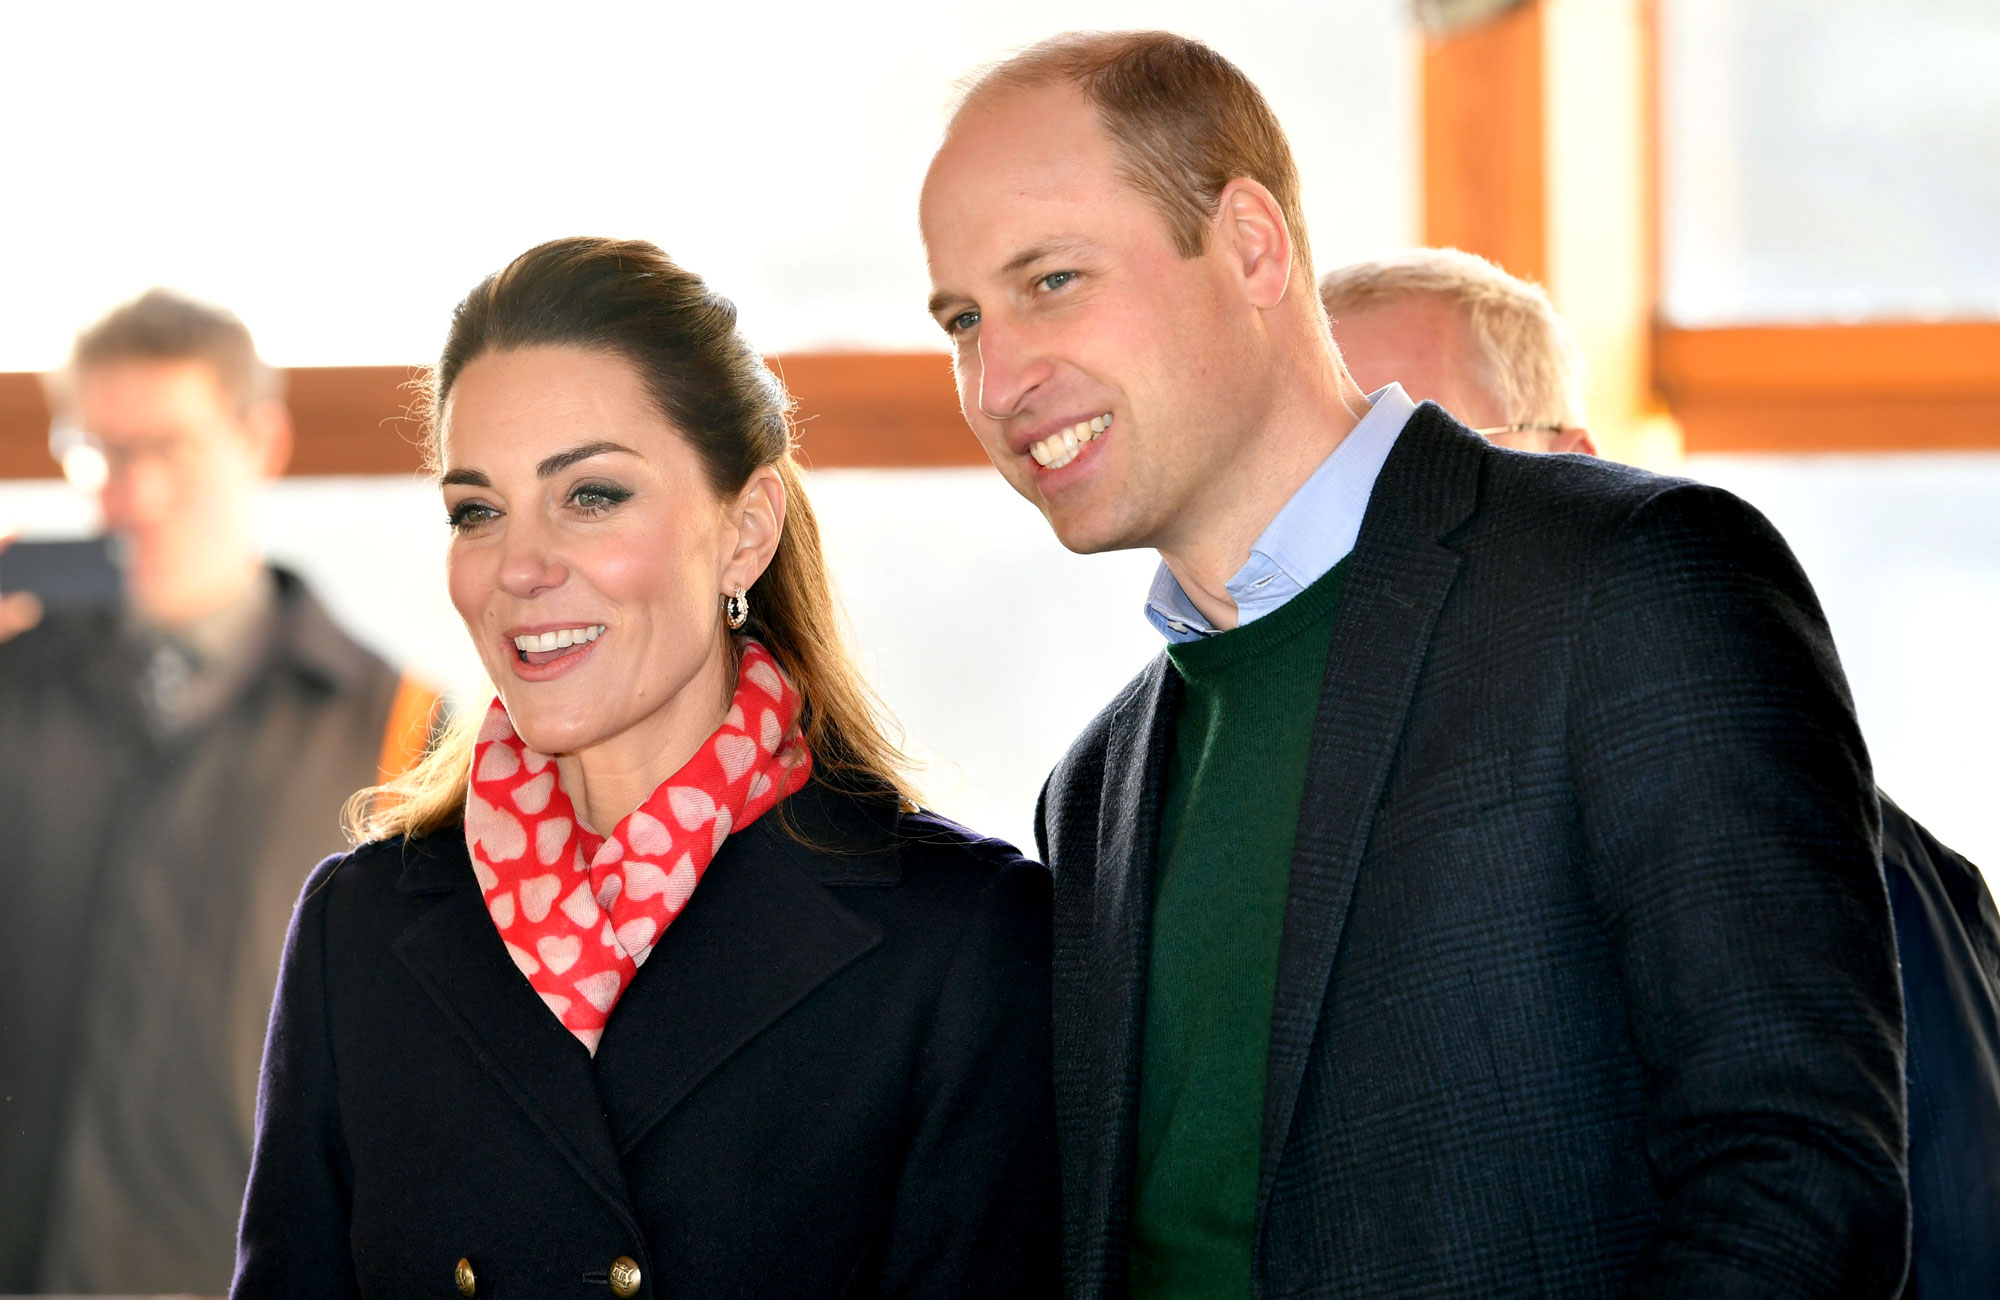 Prince William and Duchess Kate's 'Hectic Schedule' After Family Drama Has 'Brought Them Closer Together'